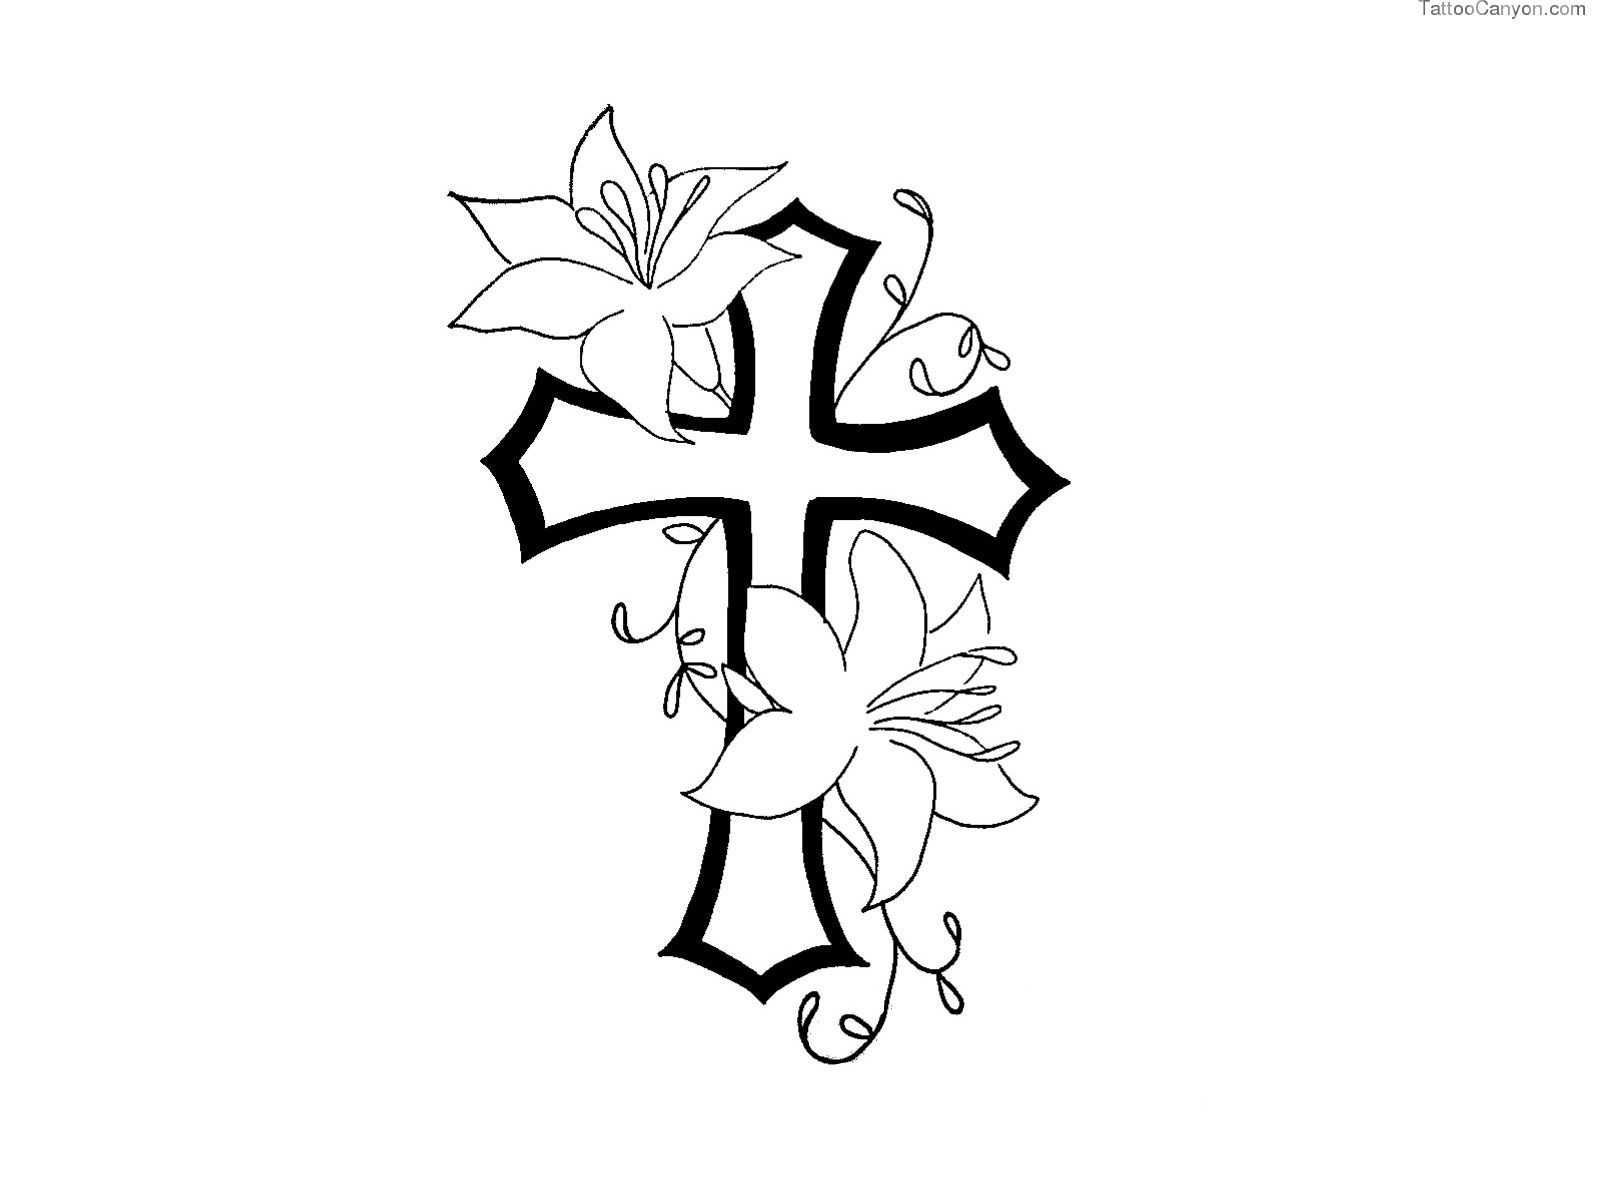 Free Designs Cross With Flower Contour Tattoo Wallpaper Picture.